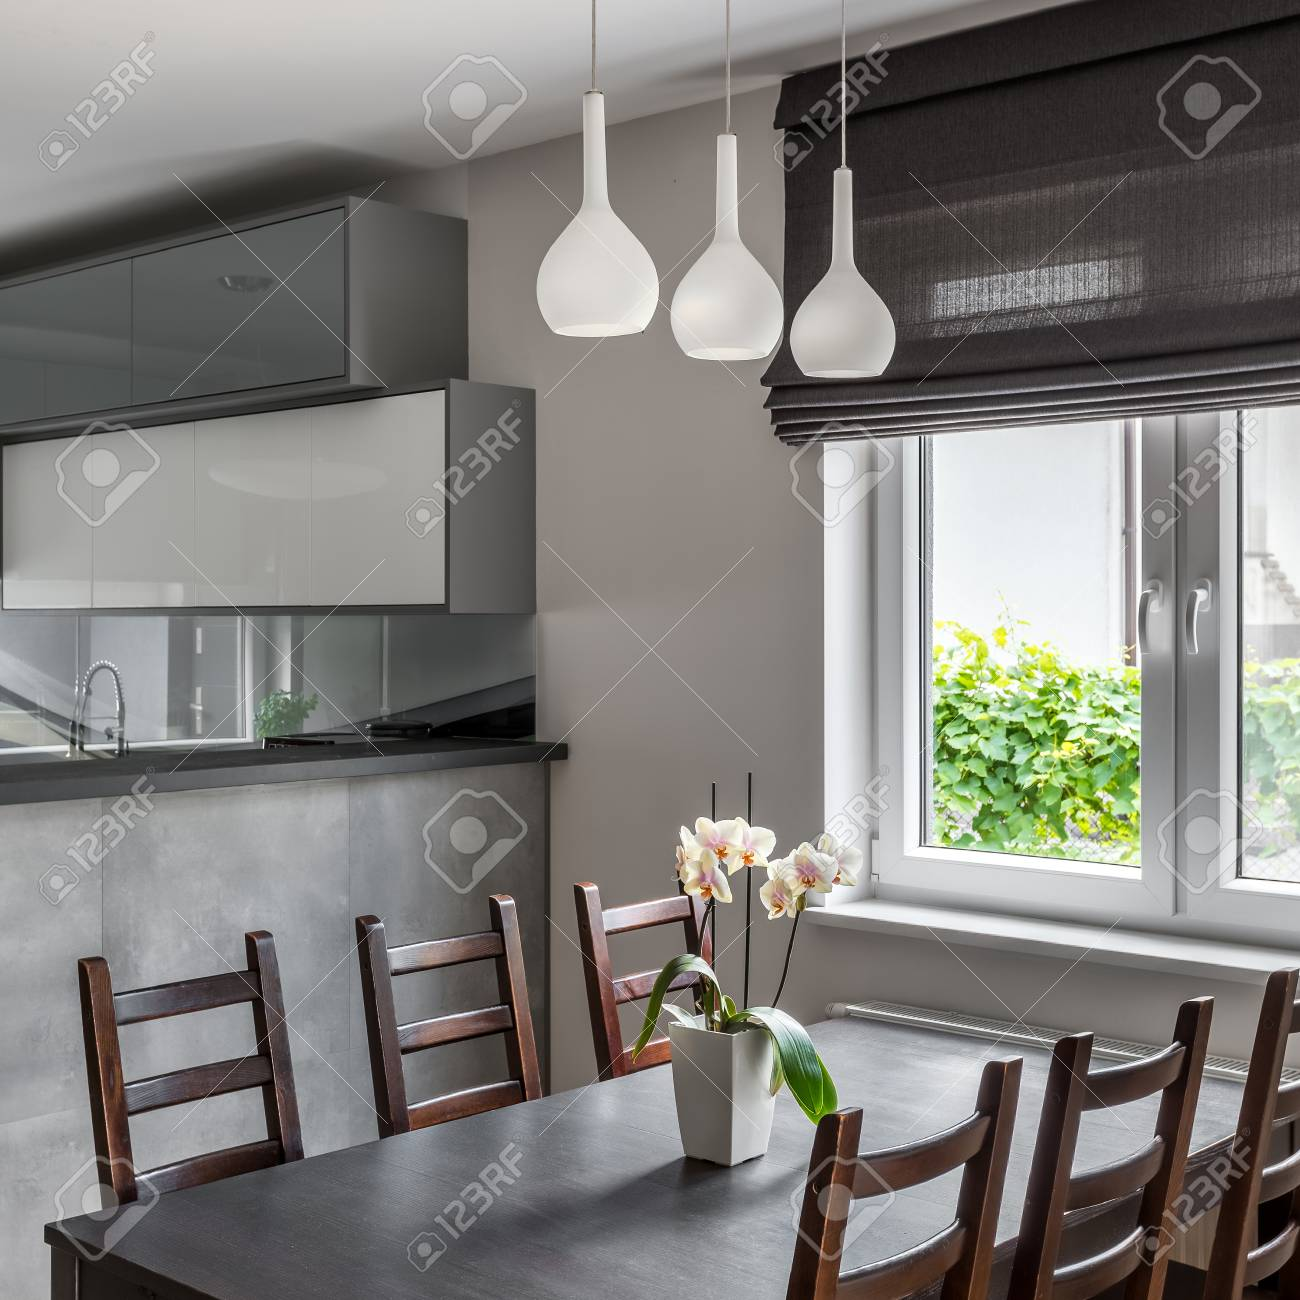 Dining Area With Table Wooden Chairs And Decorative Window Roller Stock Photo Picture And Royalty Free Image Image 69584839